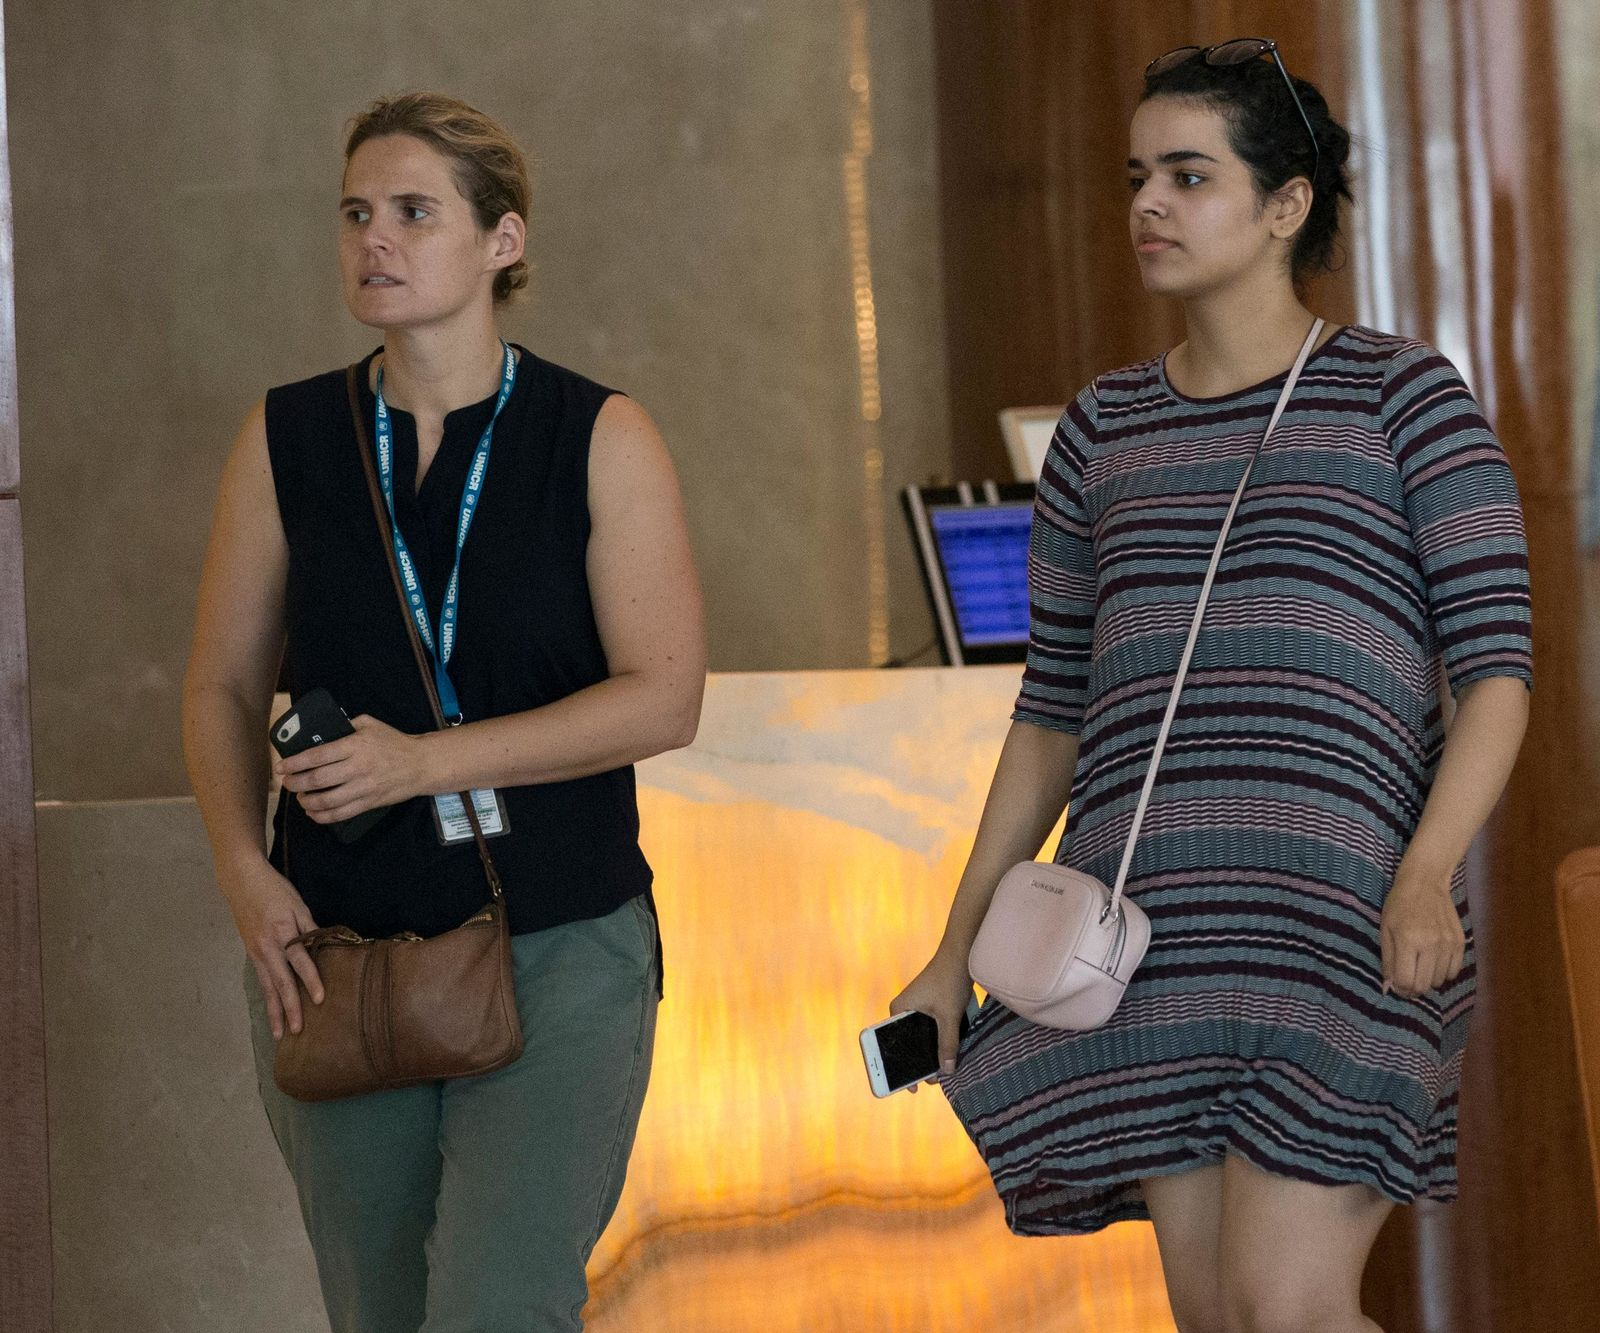 Rahaf Mohammed Alqunun, right, walks with an unidentified companion in Bangkok, Thailand, Friday, Jan. 11, (AP Photo/Sakchai Lalit)